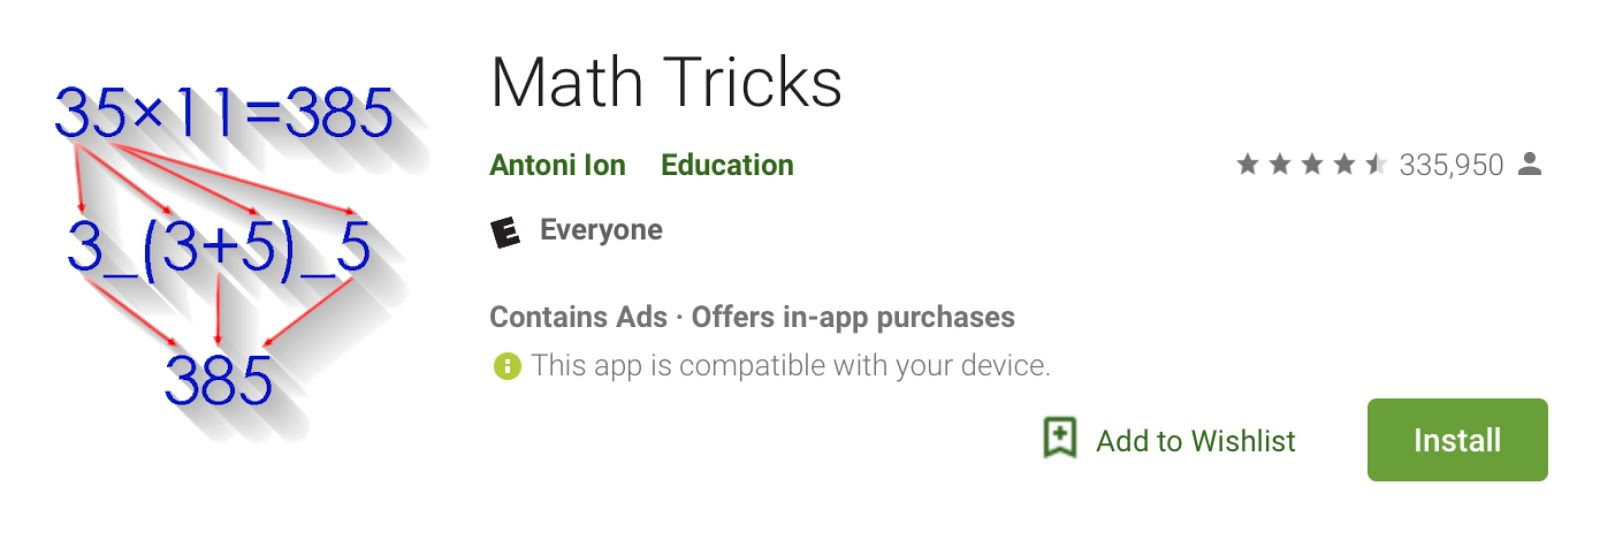 UCET Free Android App: Math Tricks - UCET